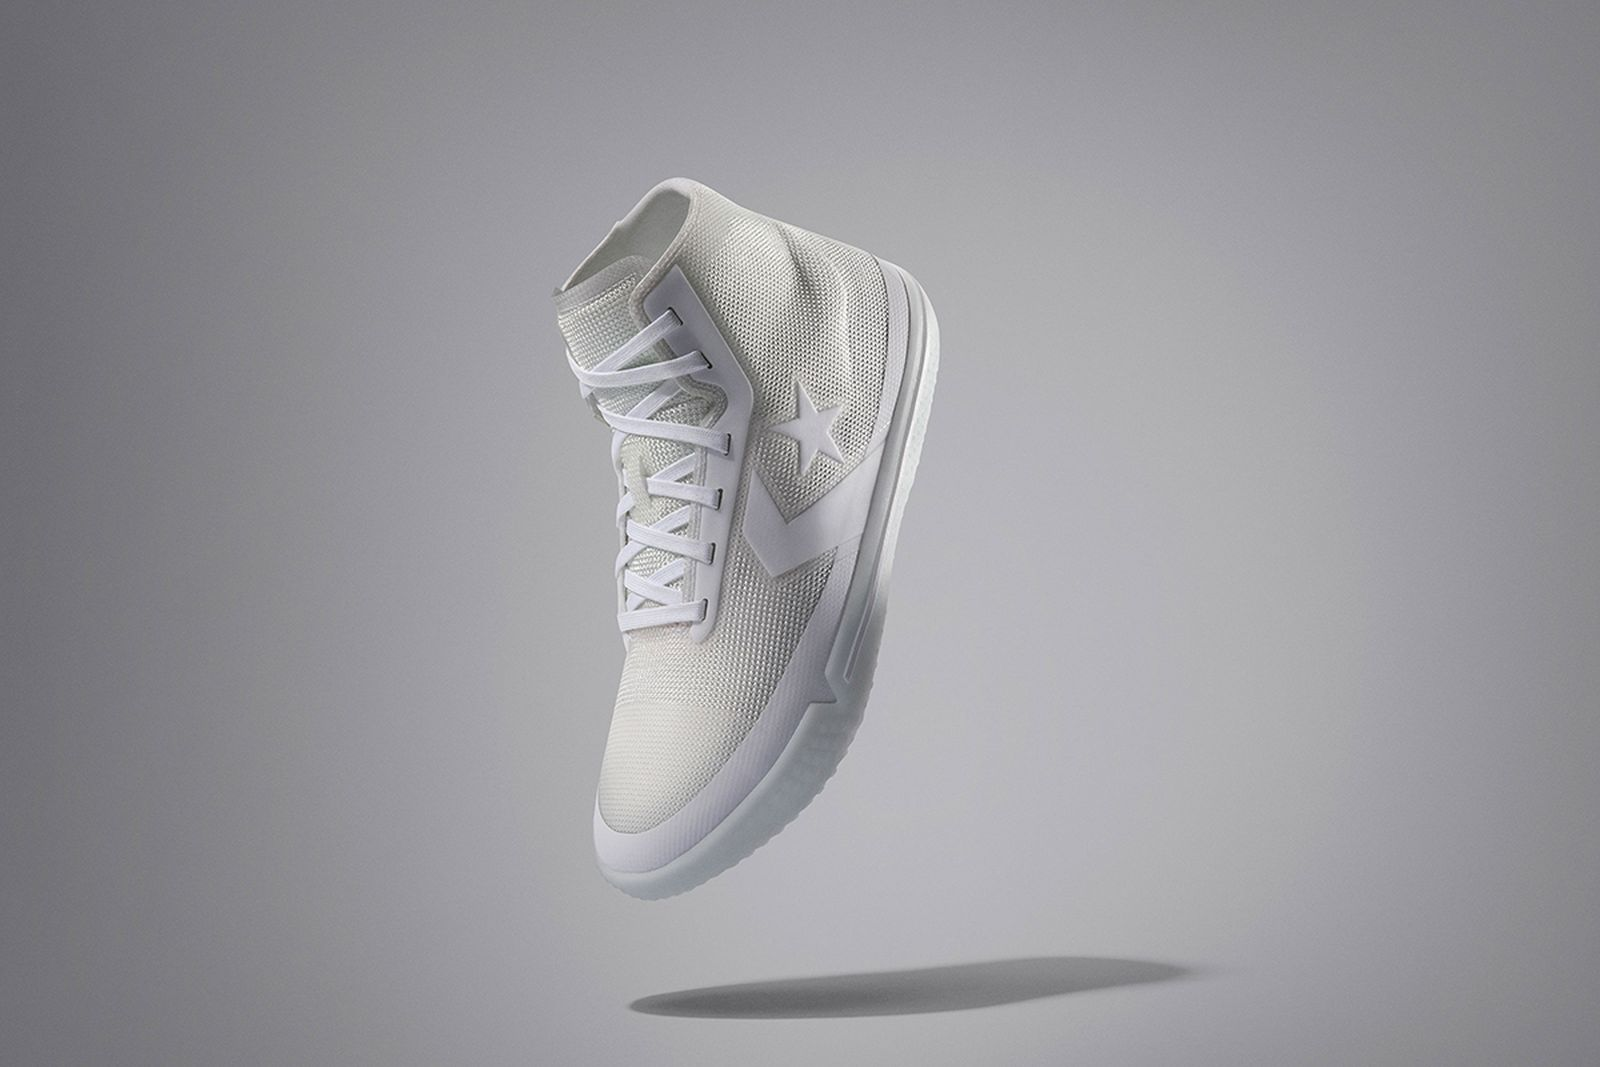 nike-nba-all-star-2020-collection-release-date-price-2-01